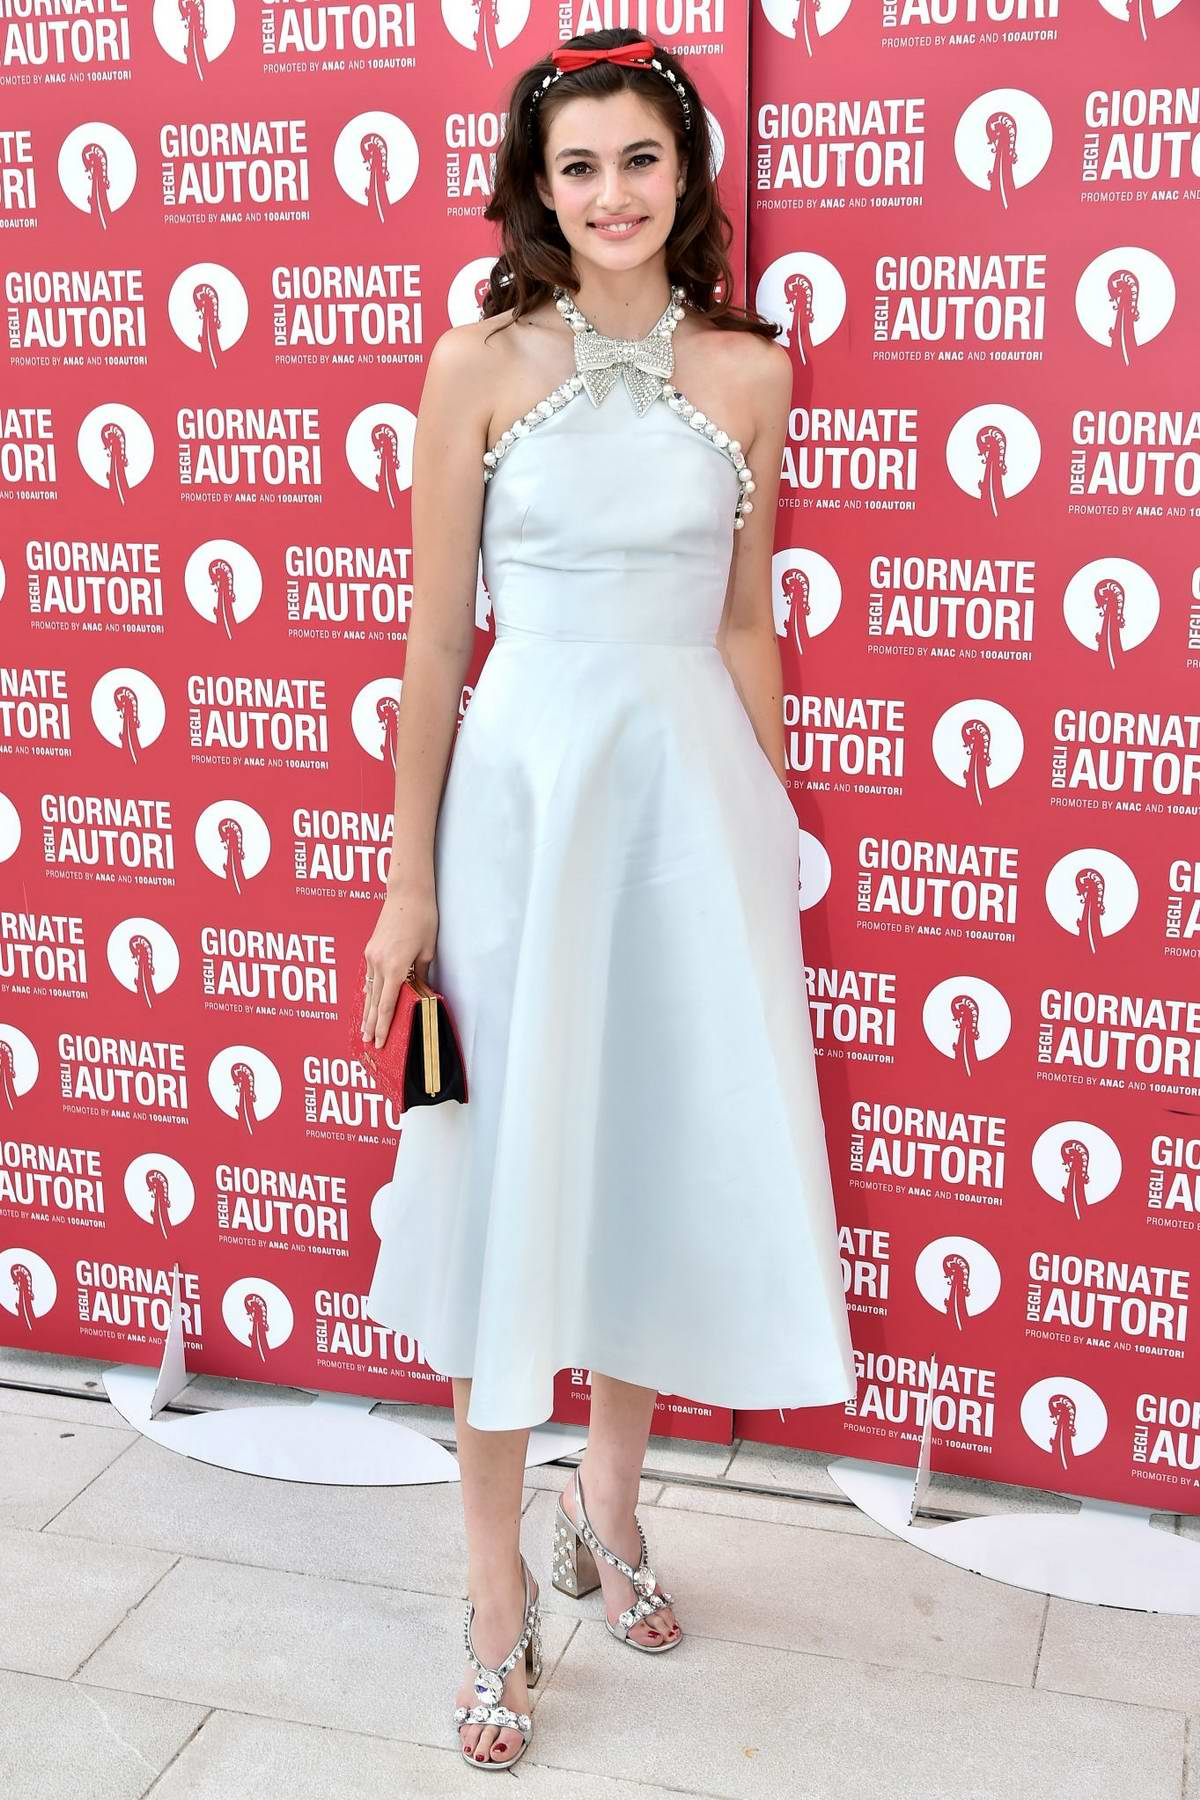 Diana Silvers attends the Miu Miu Photocall during the 76th Venice Film Festival at Sala Volpi in Venice, Italy